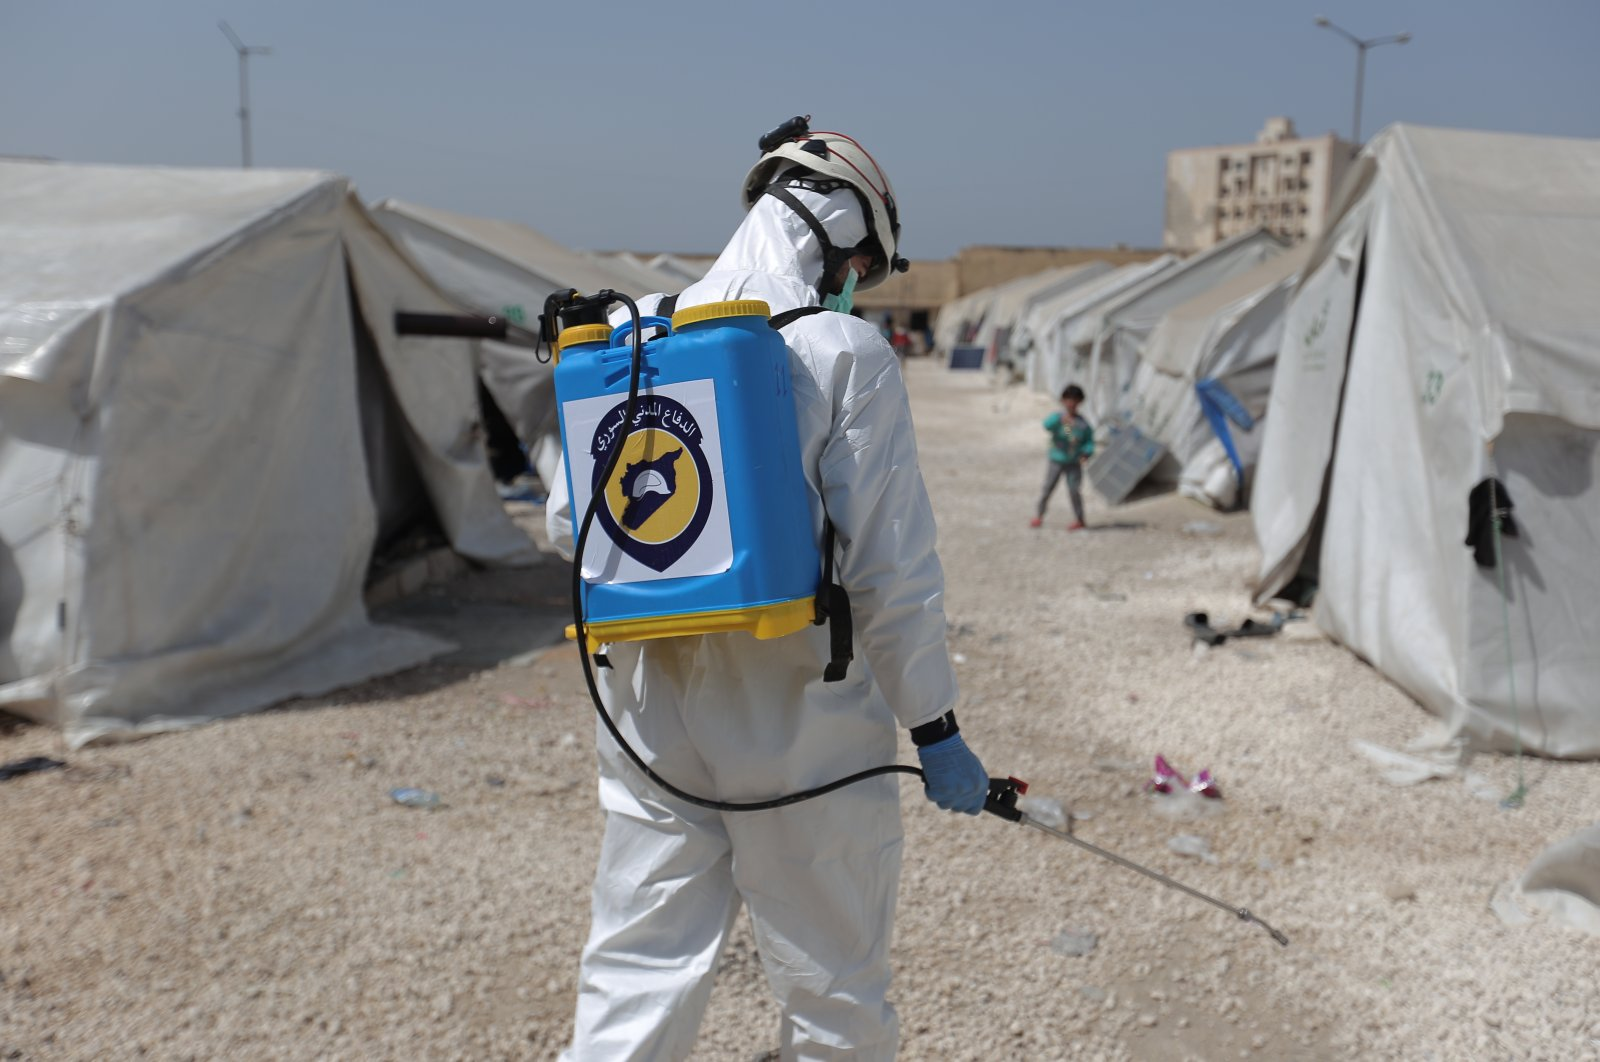 White Helmets civil defense teams try to conduct disinfection works in crowded camps and buildings in Syria's Idlib, March 24, 2020. (AA Photo)